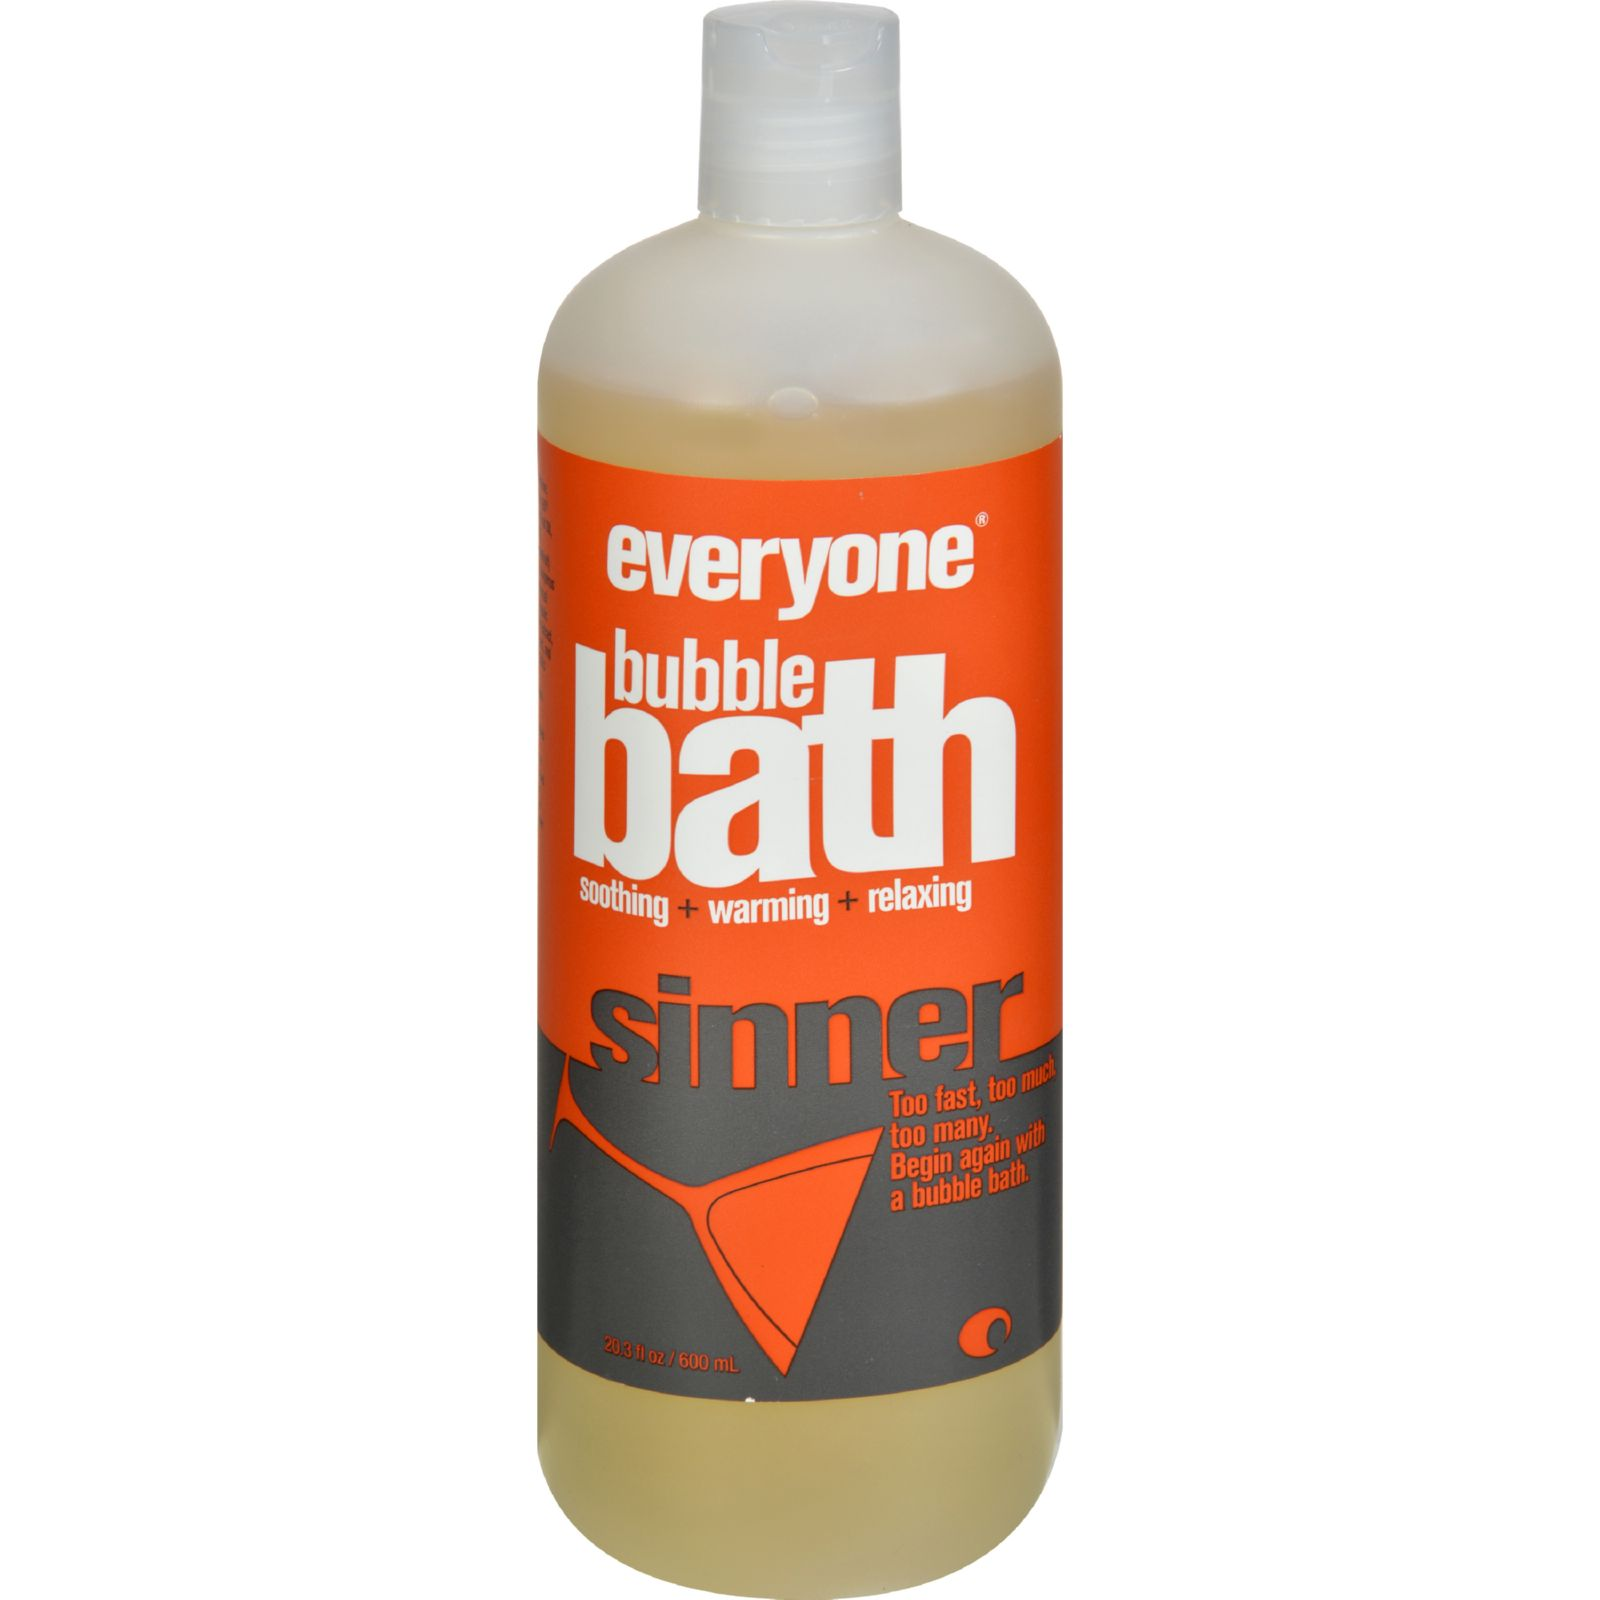 Eo Products Bubble Bath - Everyone - Sinner - 20.3 Fl Oz